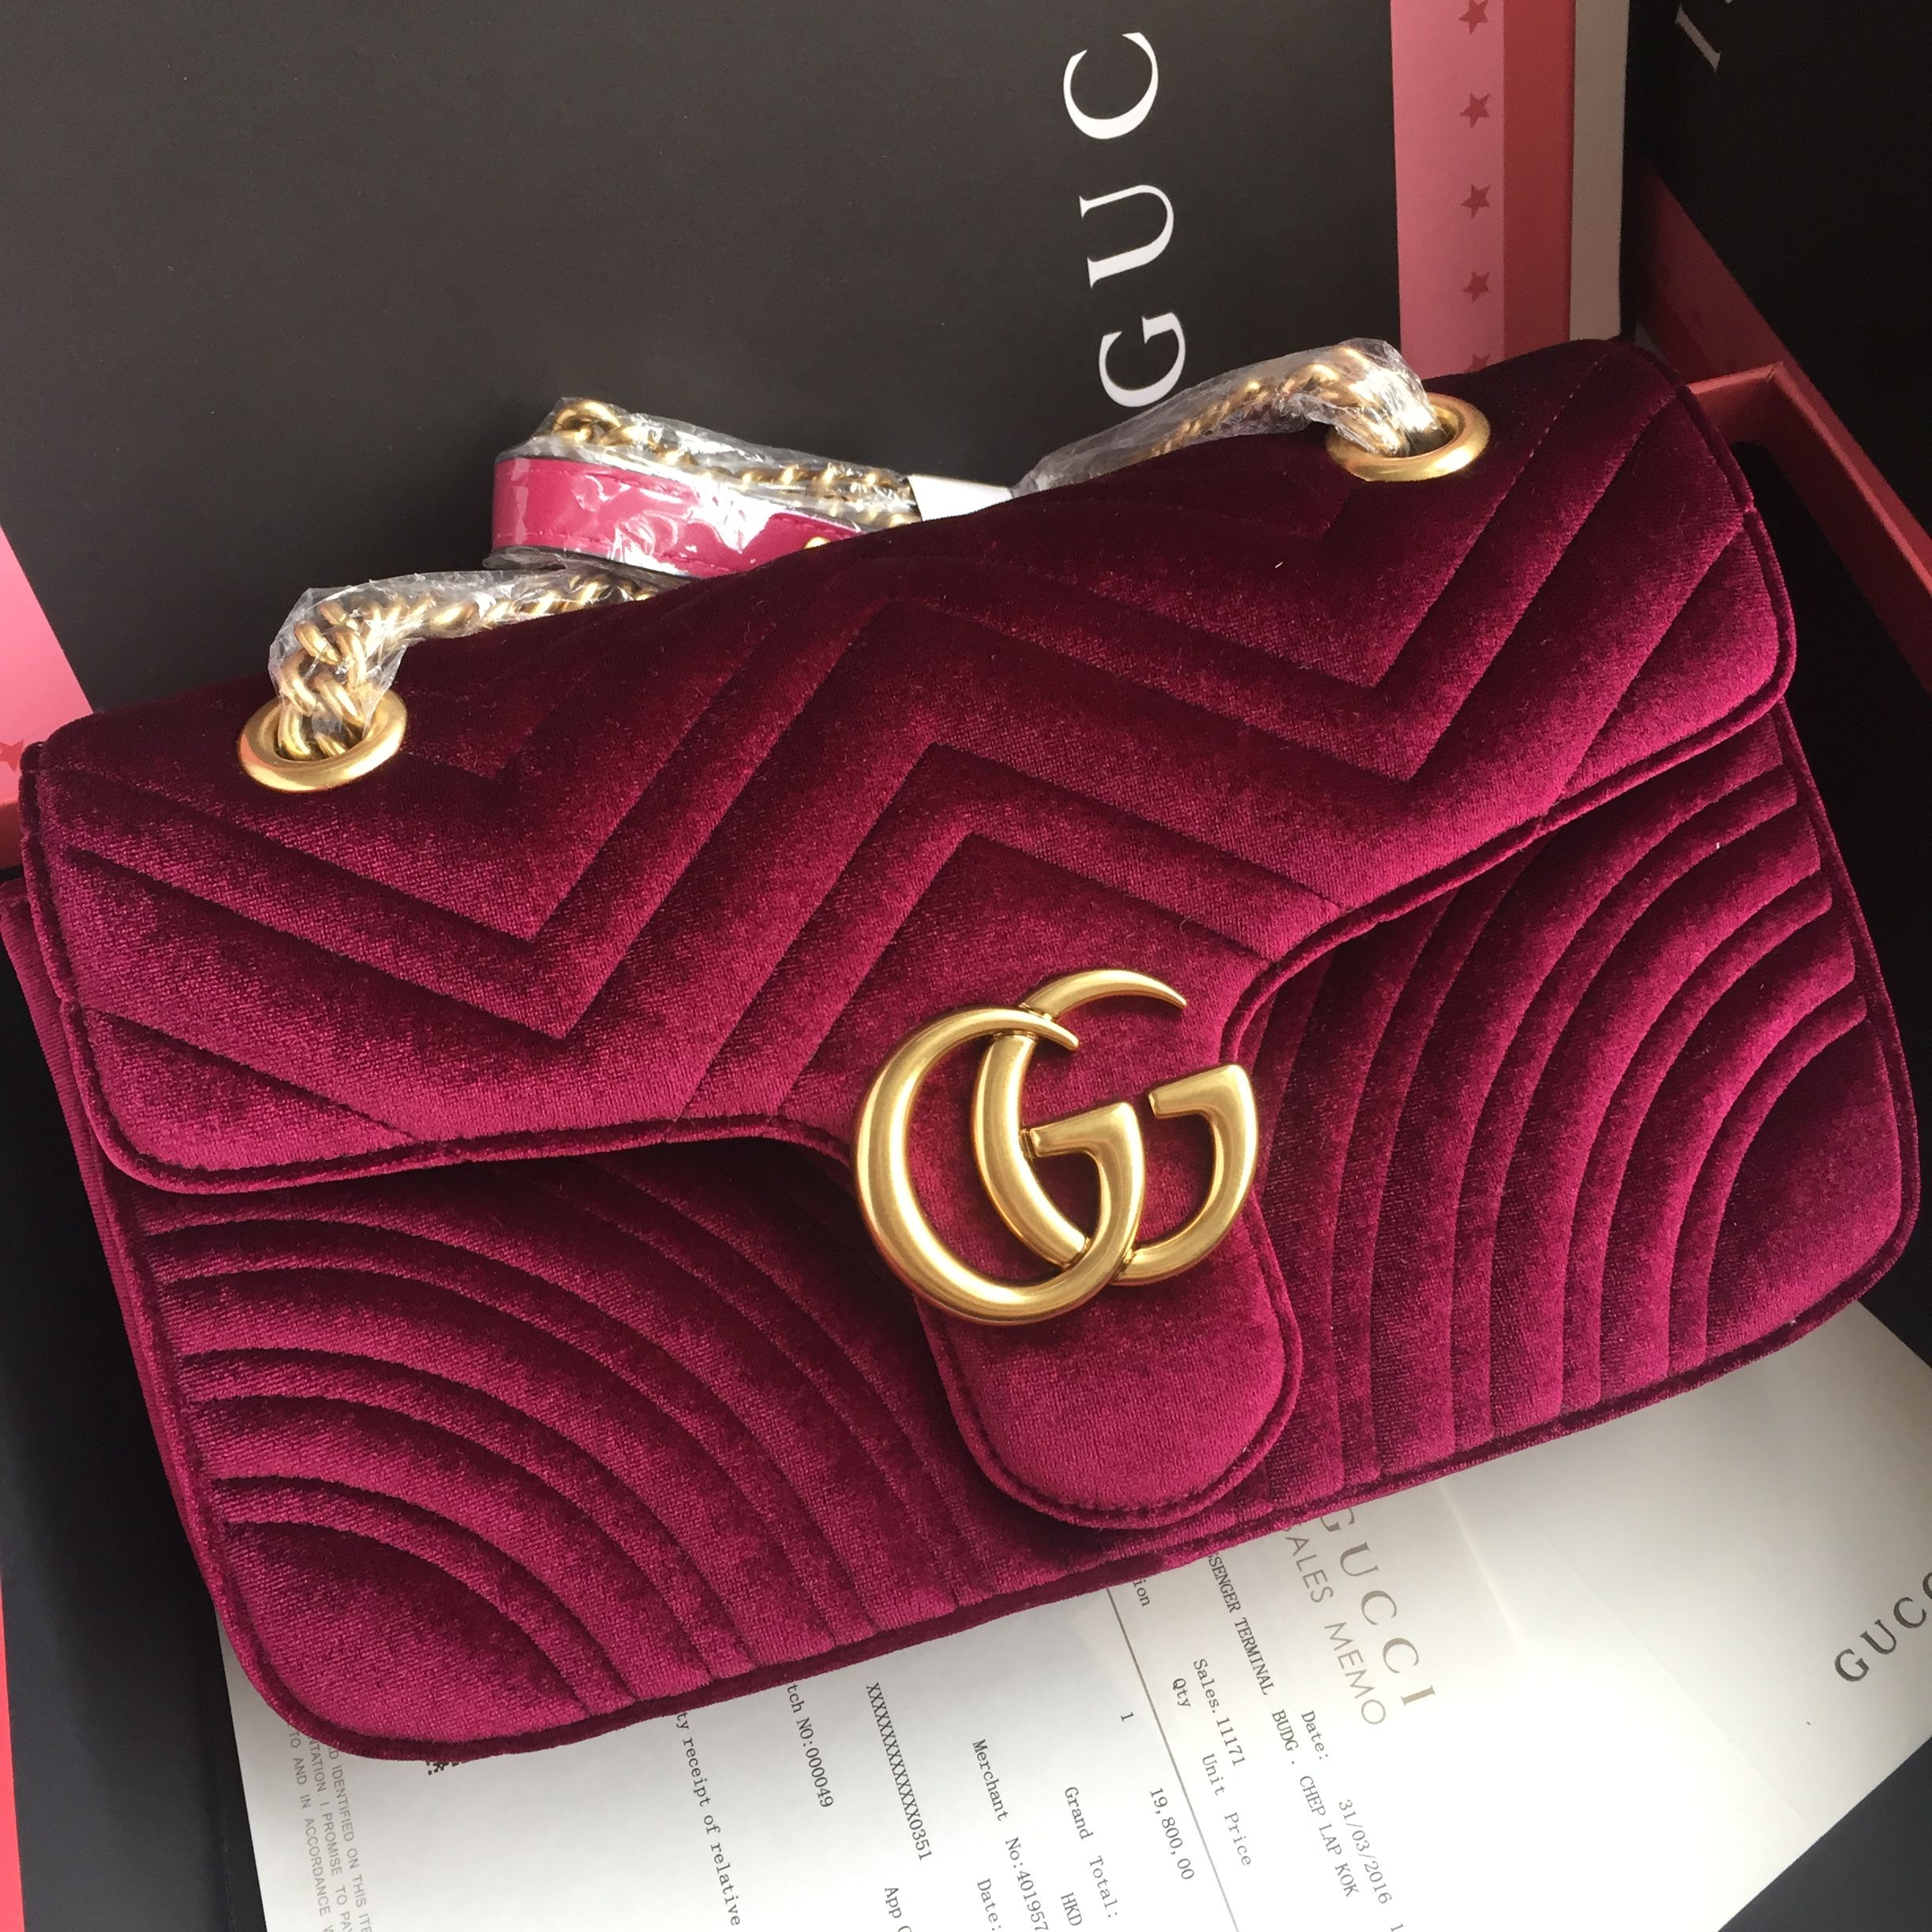 5ed84bb8a765 Gucci marmont velvet bag 26cm original leather wine red | Bags in ...